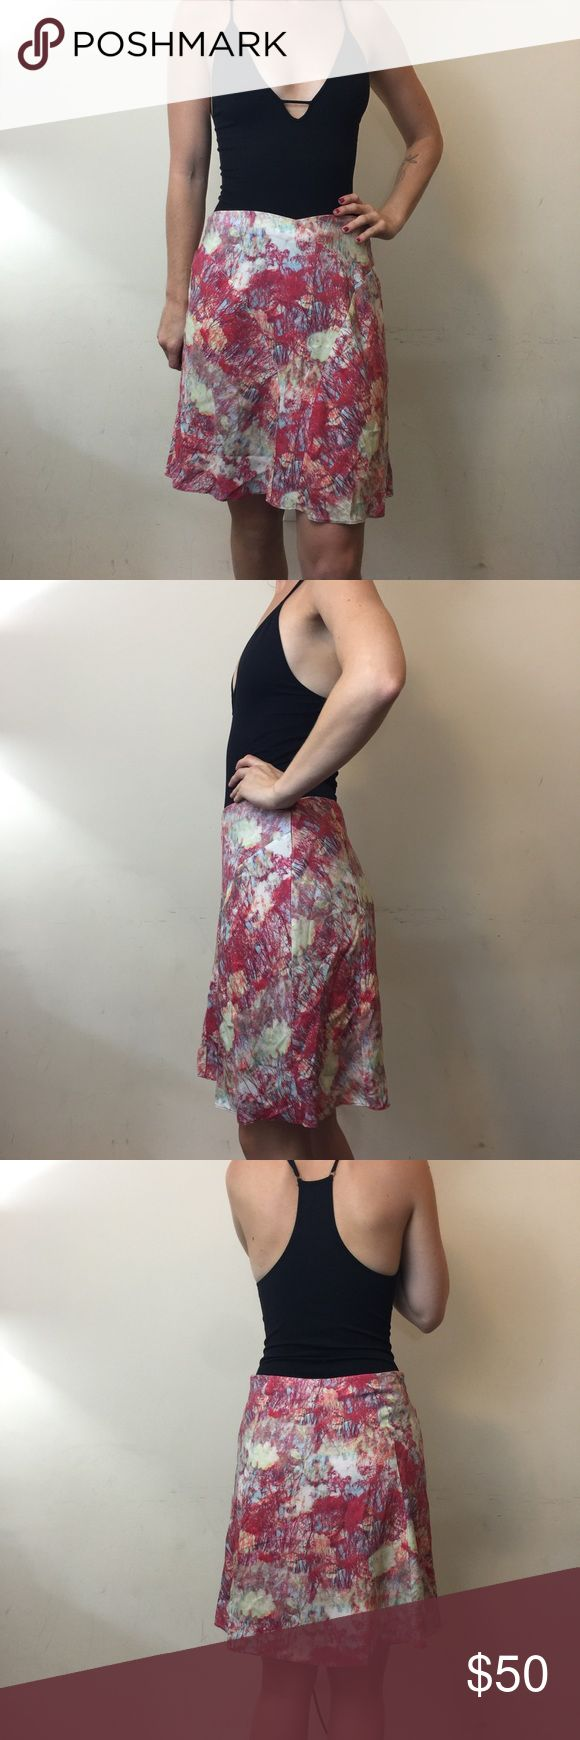 REISS Pink Abstract Printed Skater Skirt REISS Skirt ink blot like Abstract Printed skirt with a liner and is Skater style. Very cute and has a zipper closure. Size 6. No flaws. Reiss Skirts